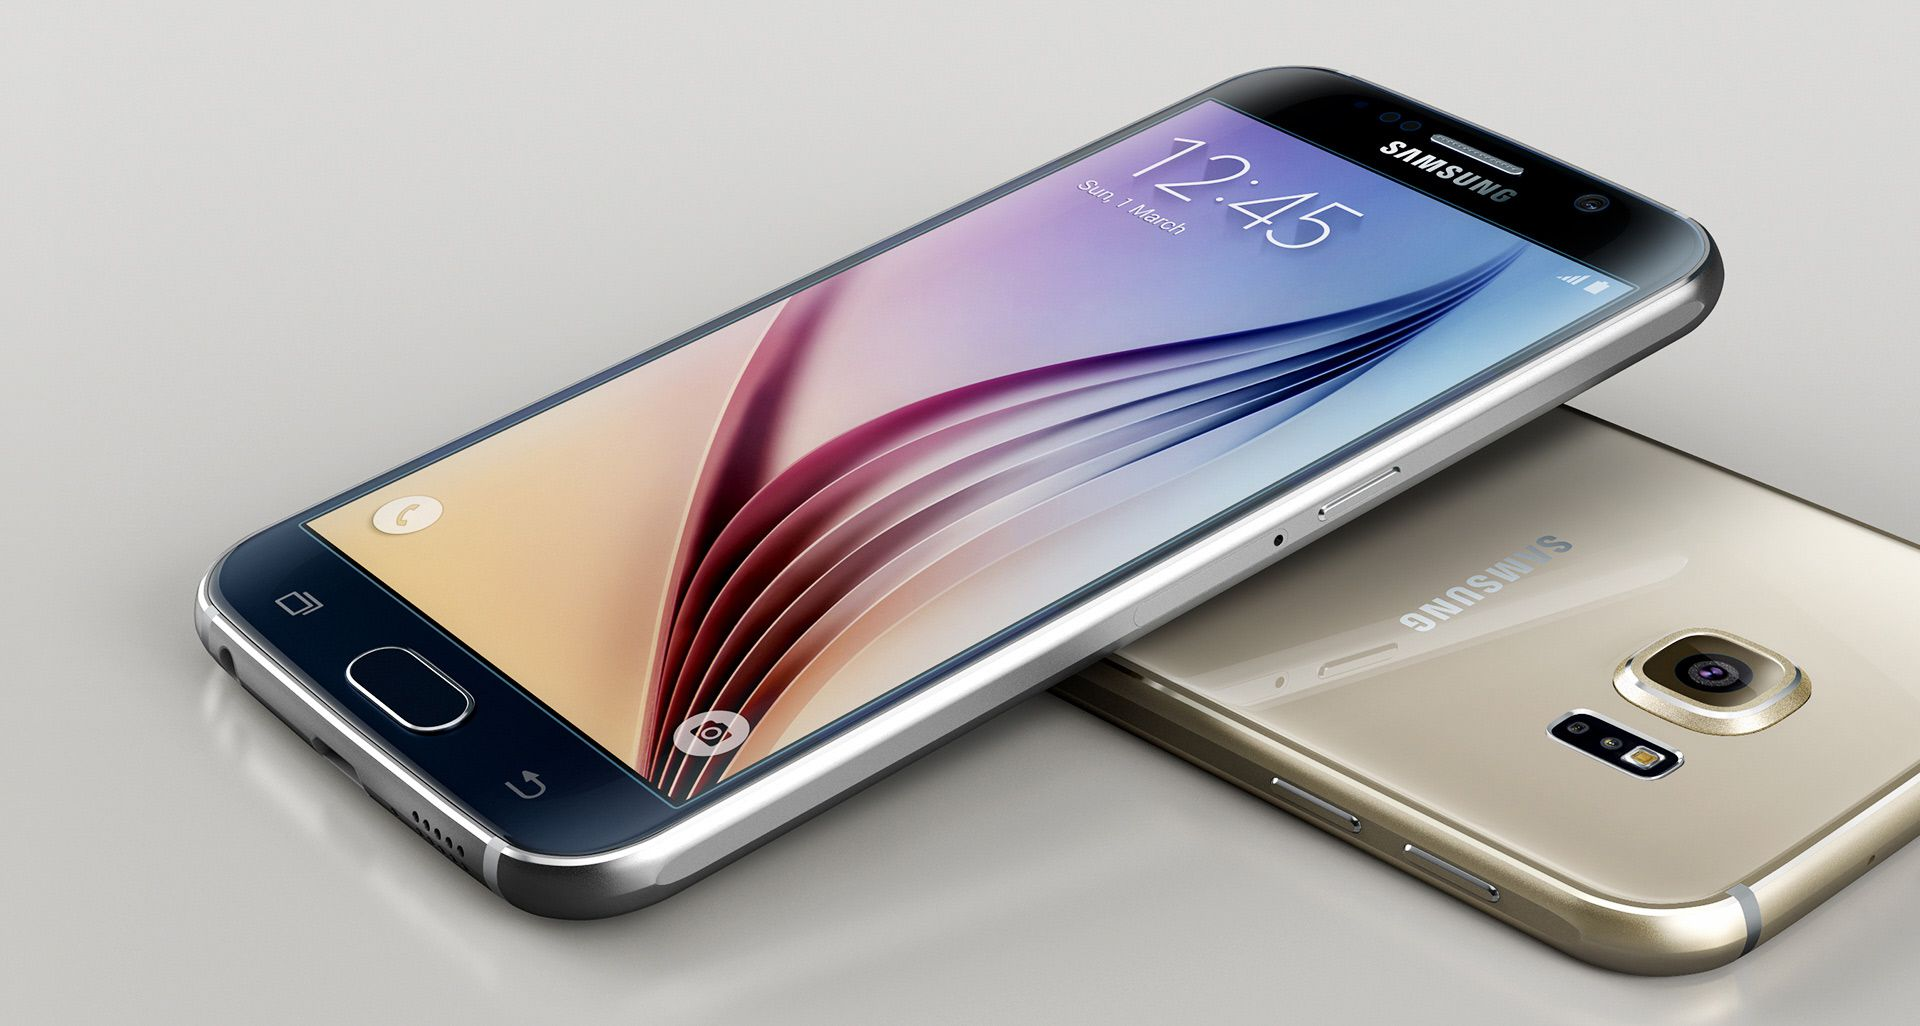 [image] Two reasons why the Samsung Galaxy S6 is ranked #30 in Japan